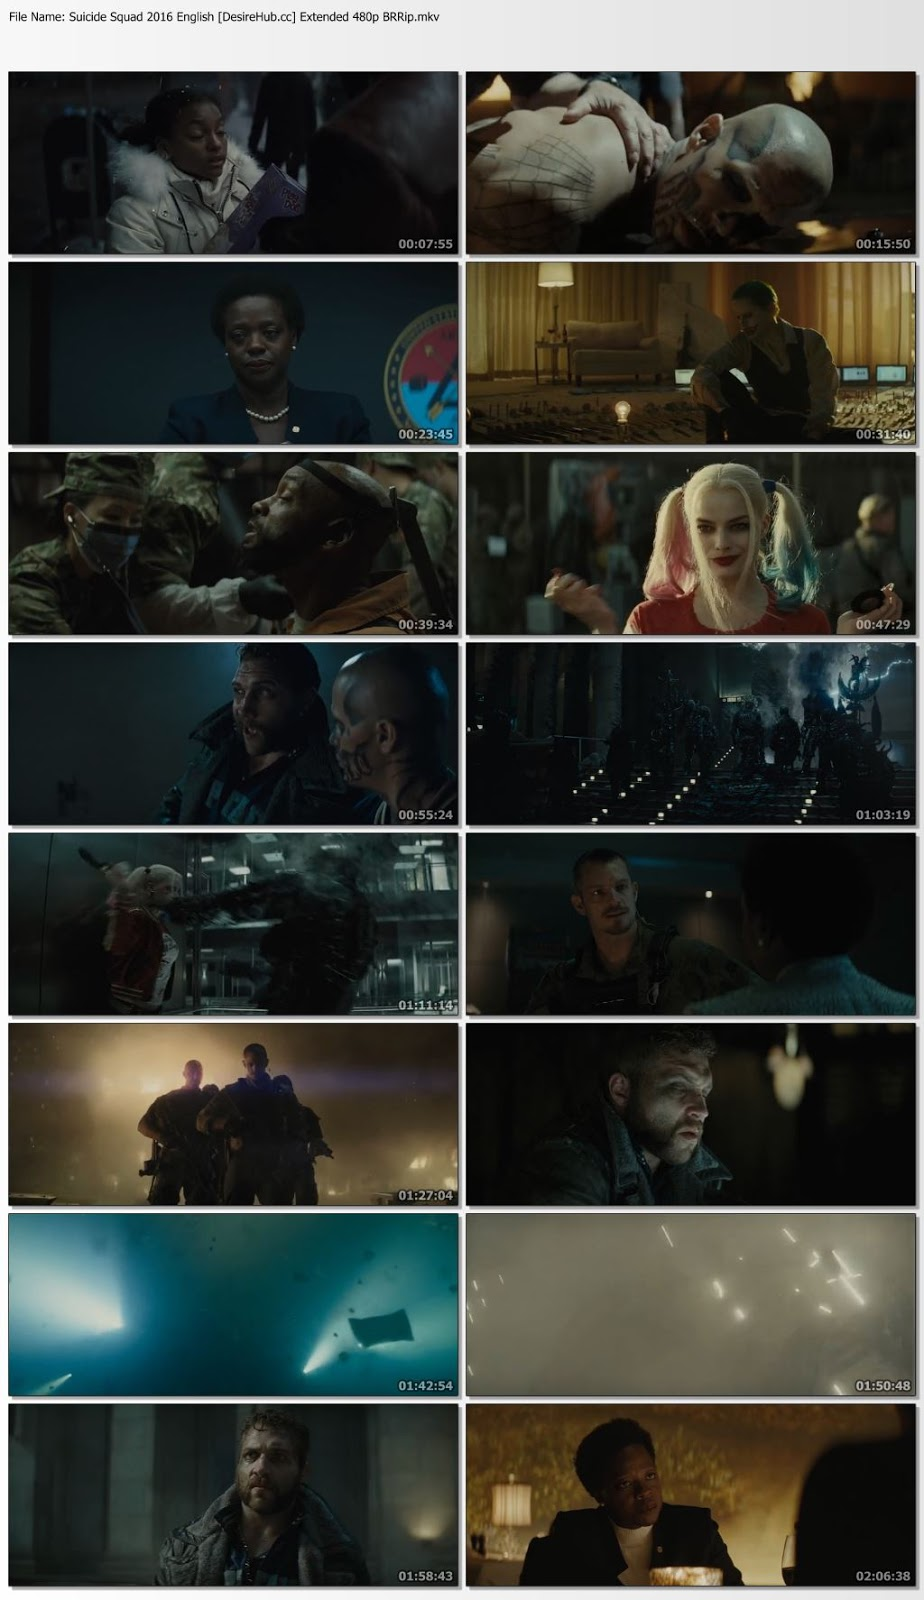 Suicide Squad 2016 English Extended 480p BRRip ESubs 350MB Desirehub